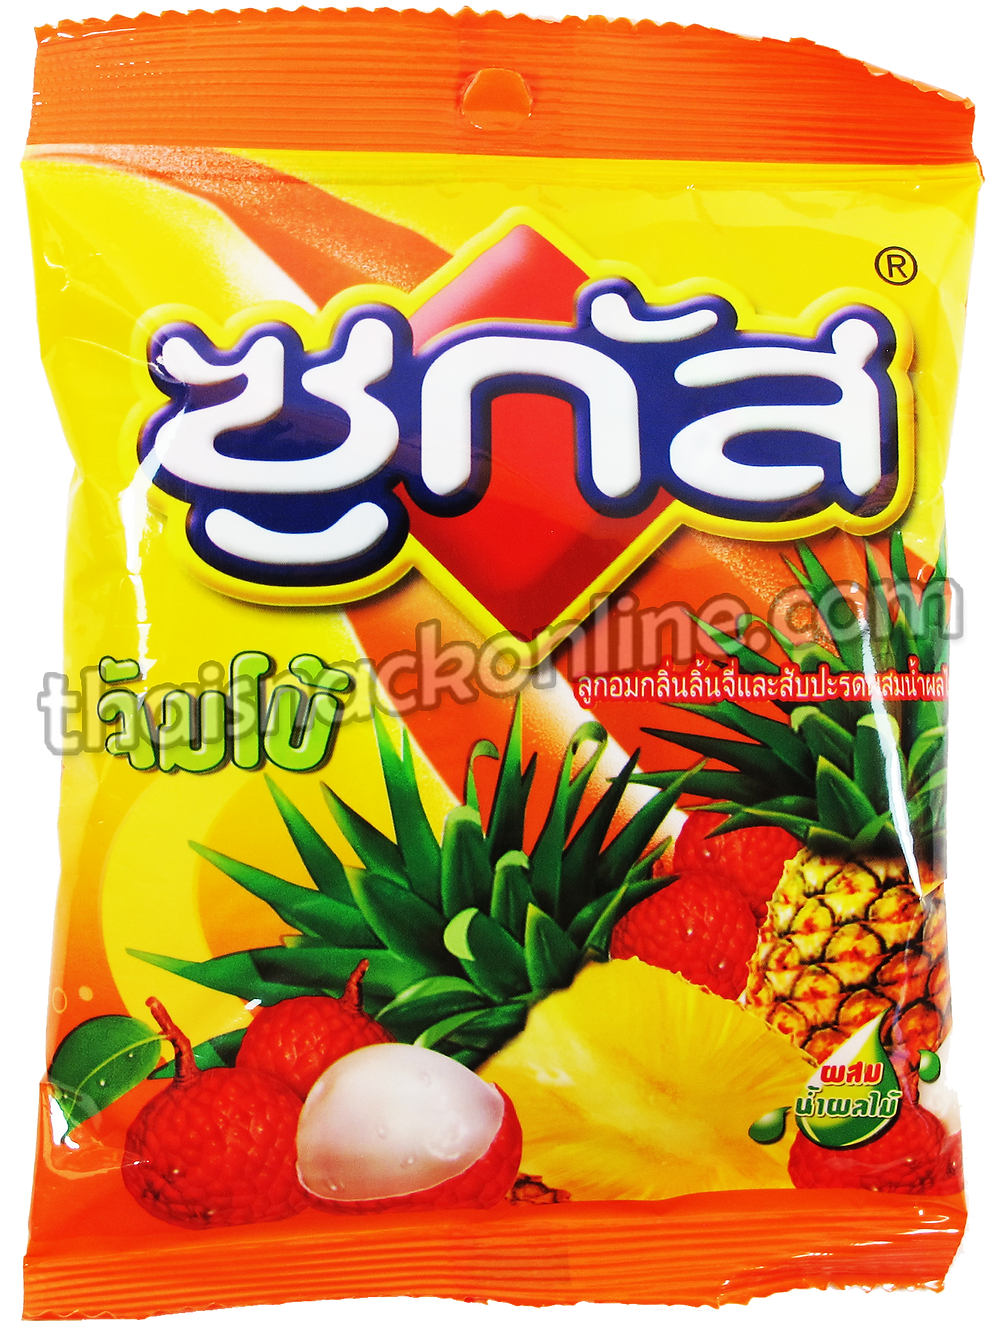 Sugus - Chewy Candy Jumbo Lychee & Pineapple